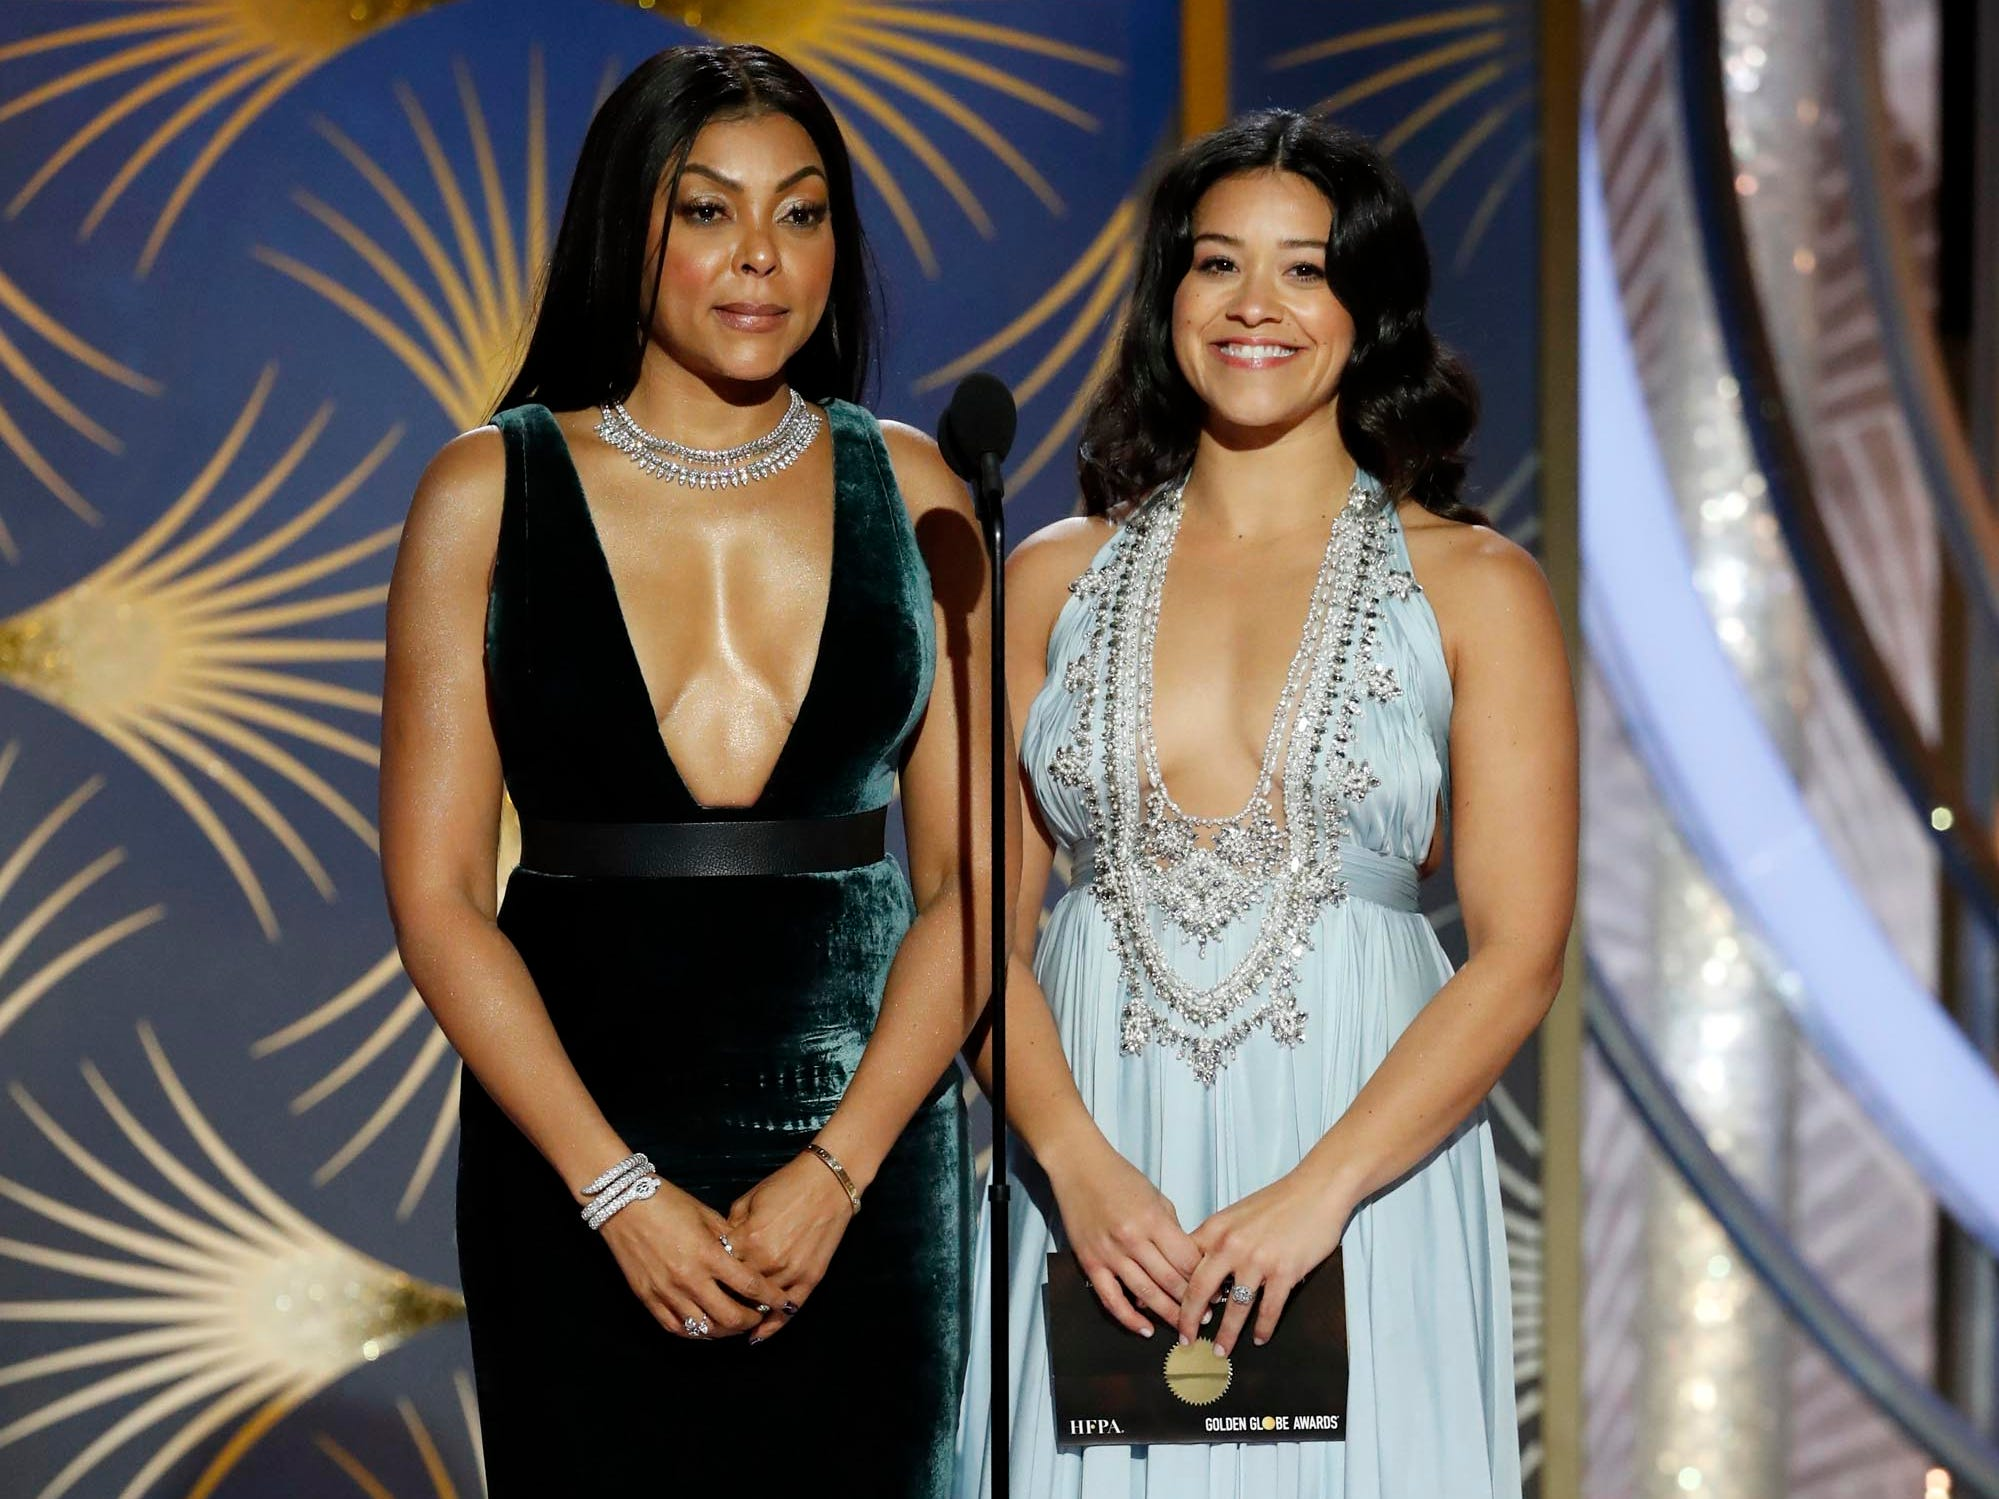 Taraji P. Henson and Gina Rodriguez present during the 76th Golden Globe Awards.